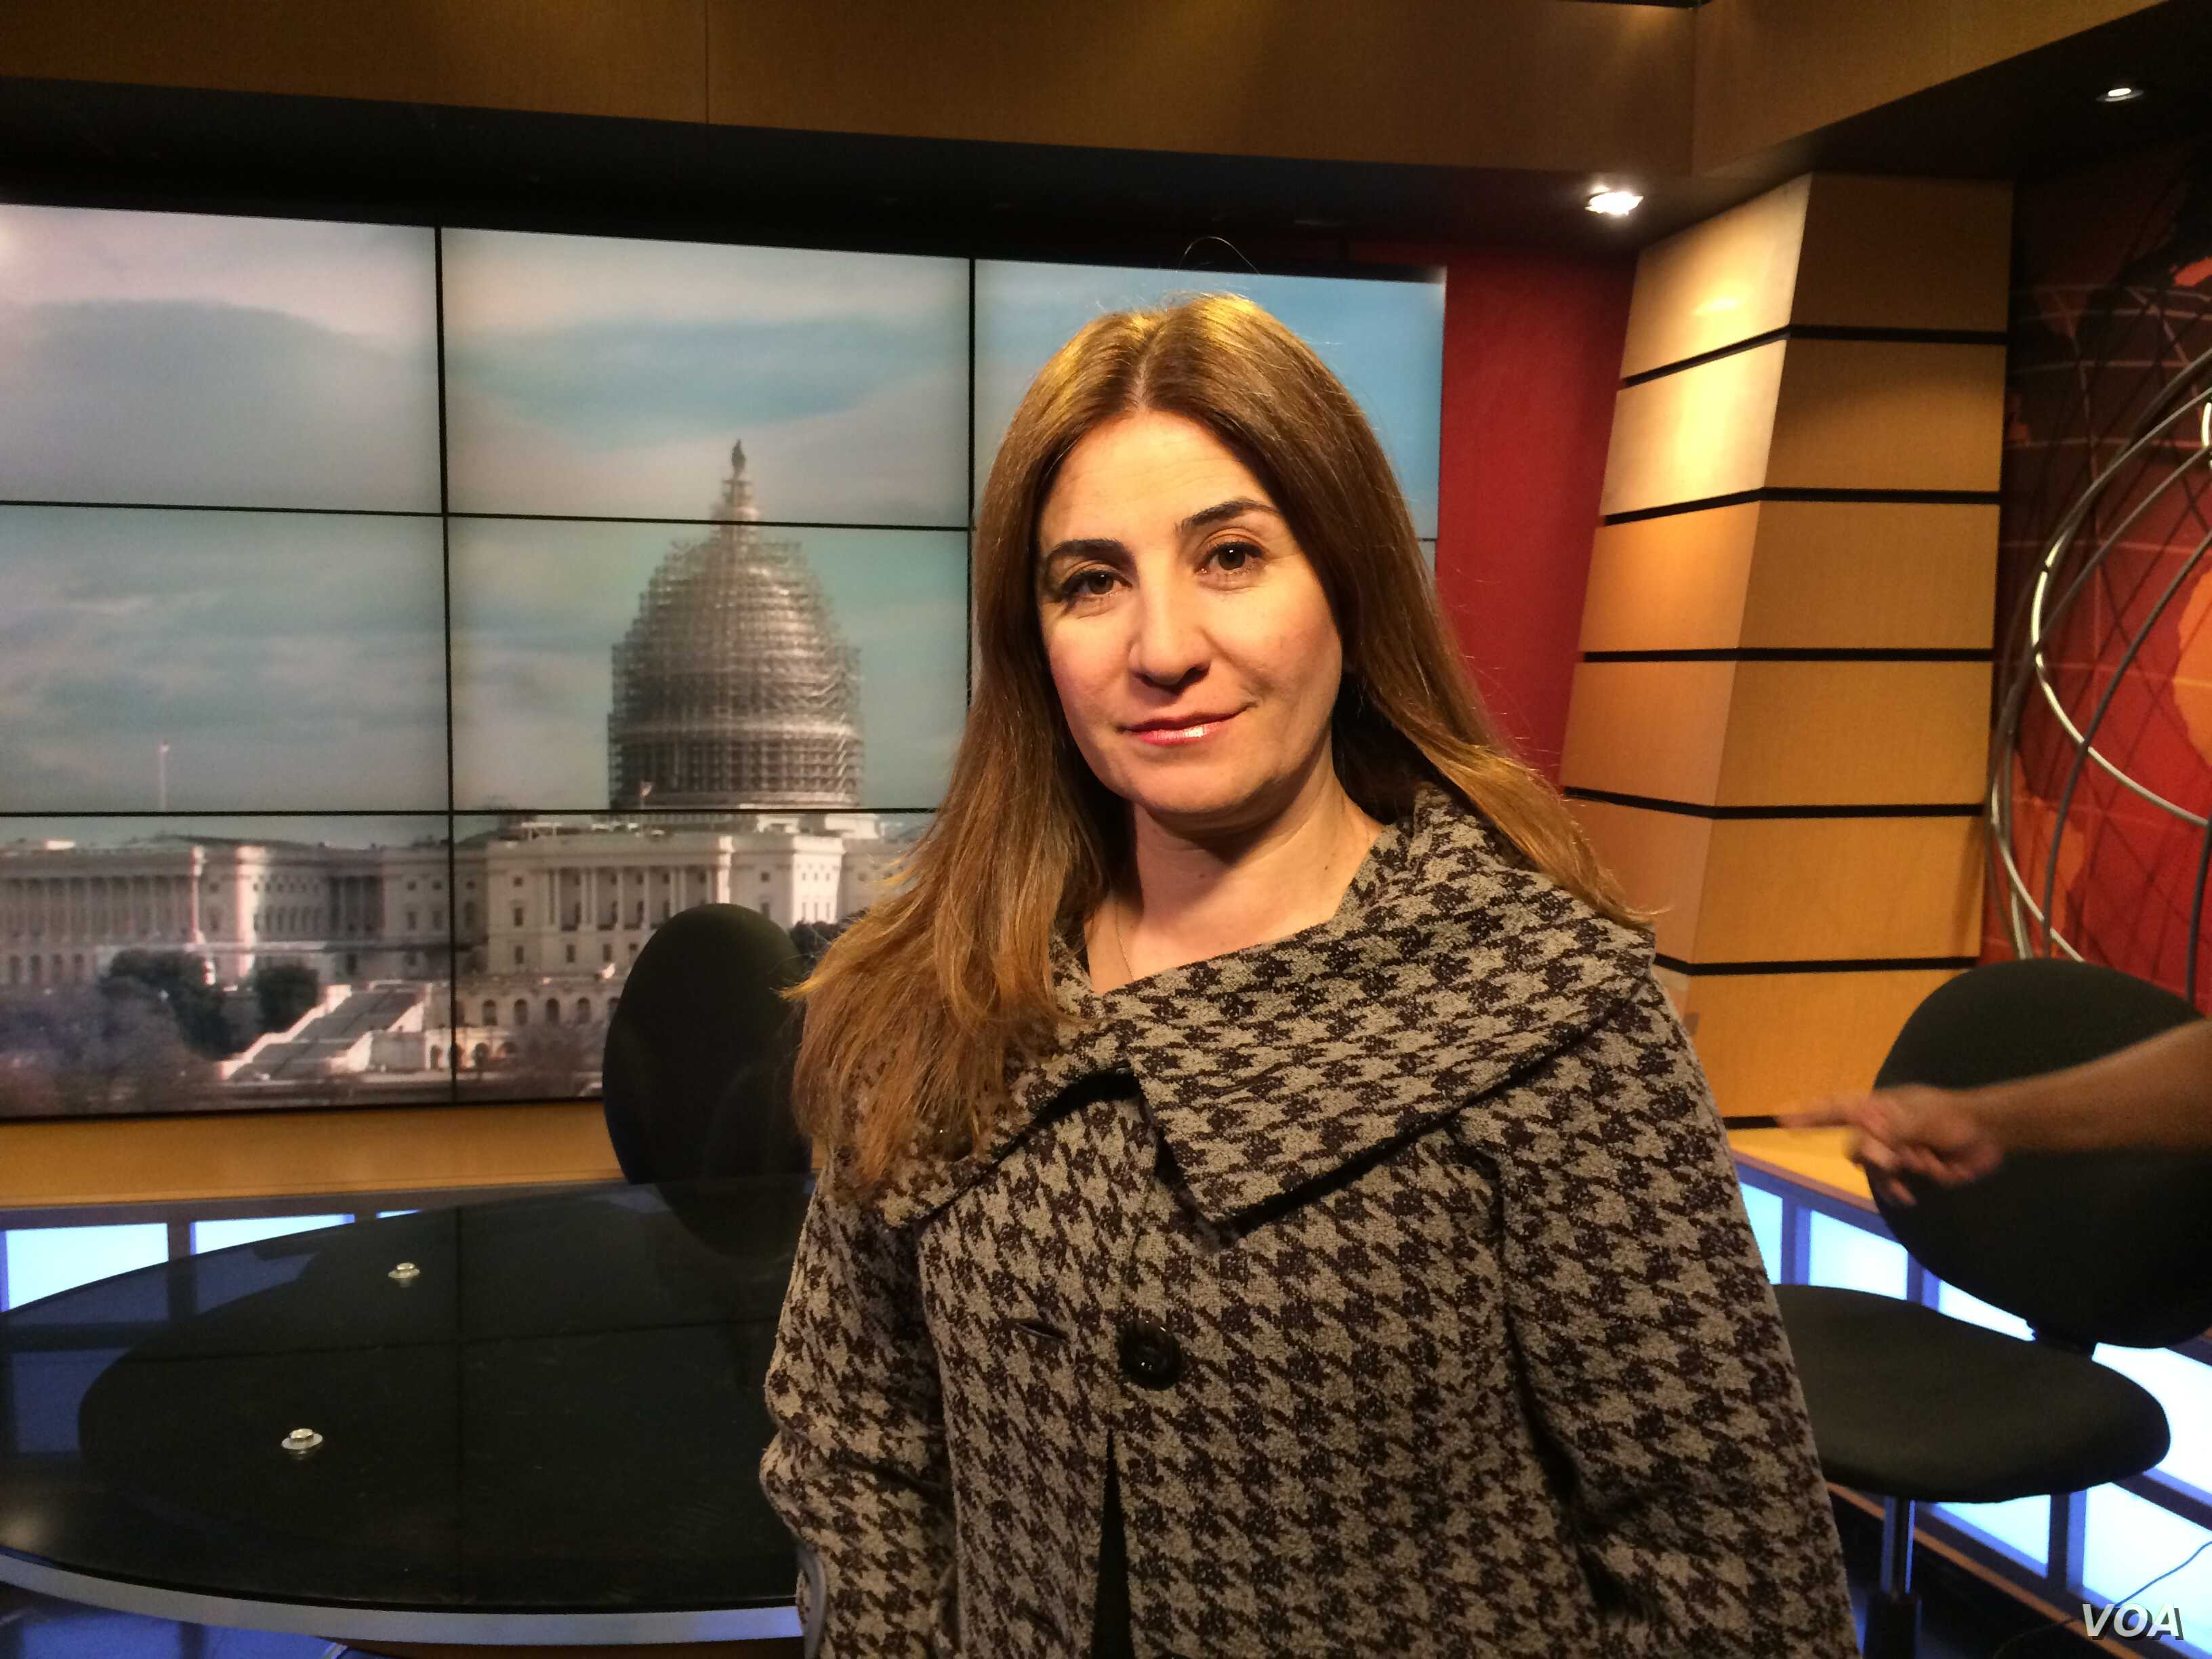 Vian Dakhil is the only Yazidi member of the Iraqi Parliament. She has been working to help tens of thousands of other Yazidis who are trapped in areas overrun by the Islamic State militants or who have fled the militants.  She has been in Washington...